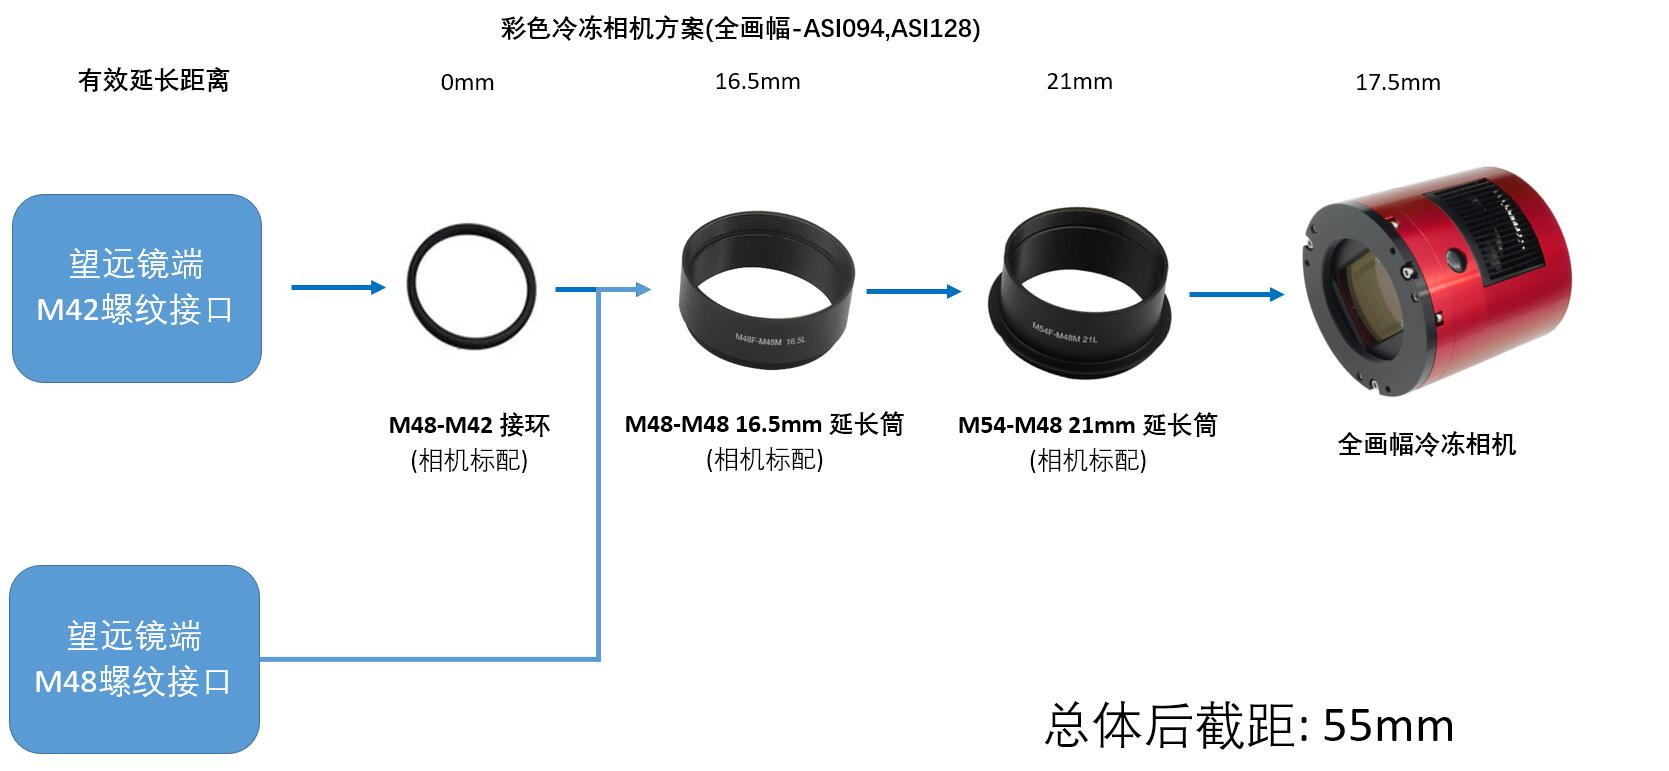 Cooled Color Camera solution(Full frame-ASI094,ASI128)(中文)